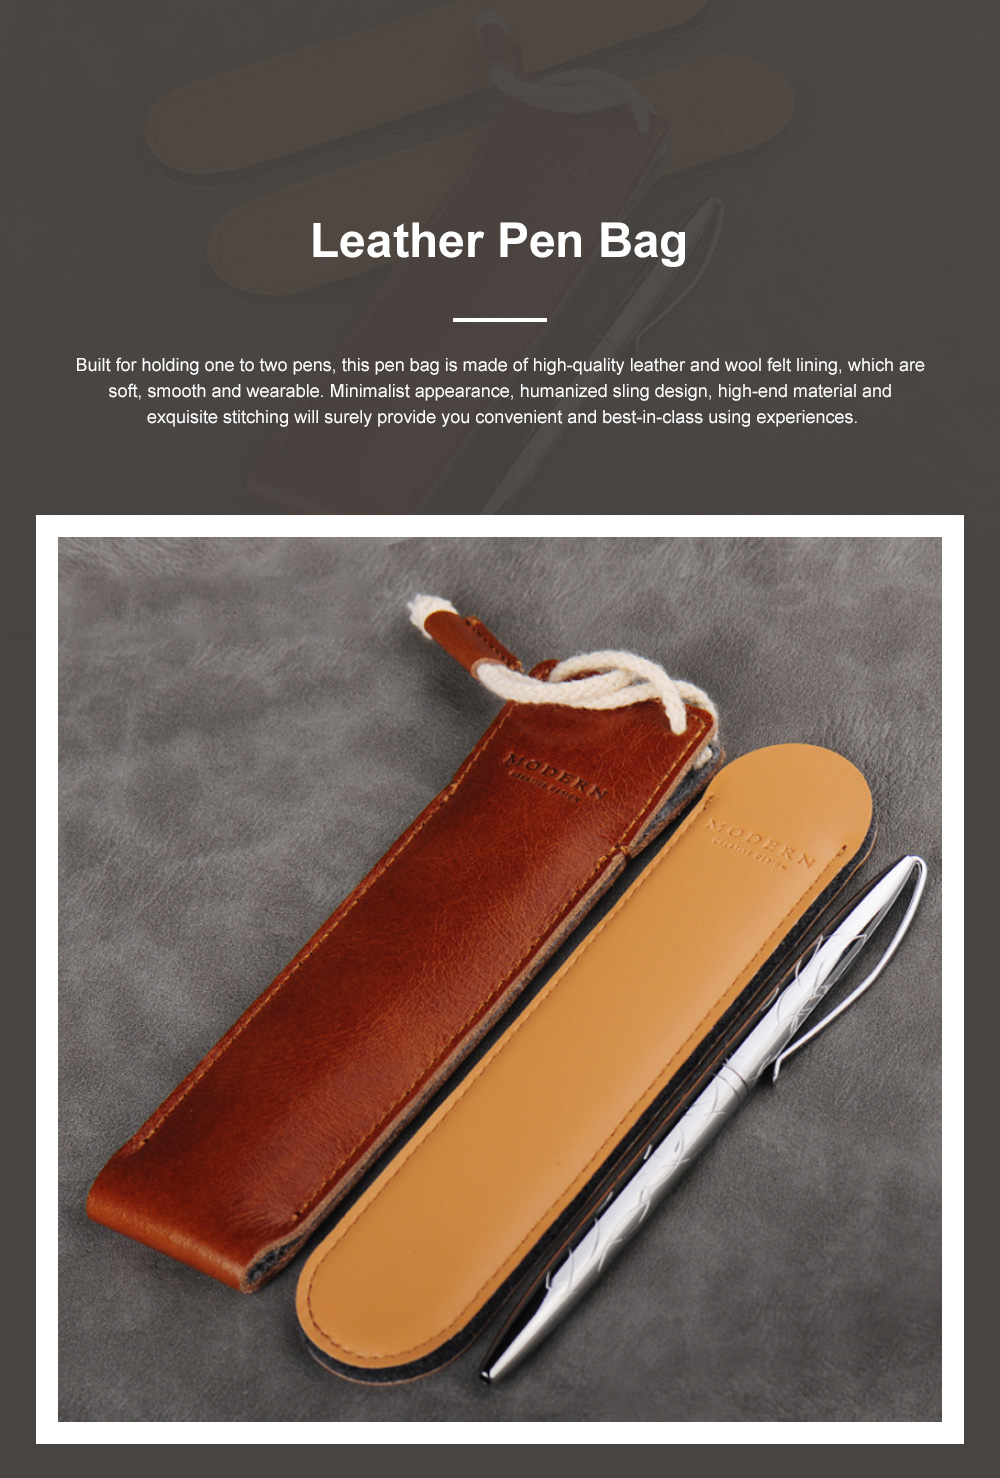 Minimalist Vintage Business Tough Soft Leather Pen Bag Pencil Case with Delicate Stitching Smooth Wool Felt Lining 0